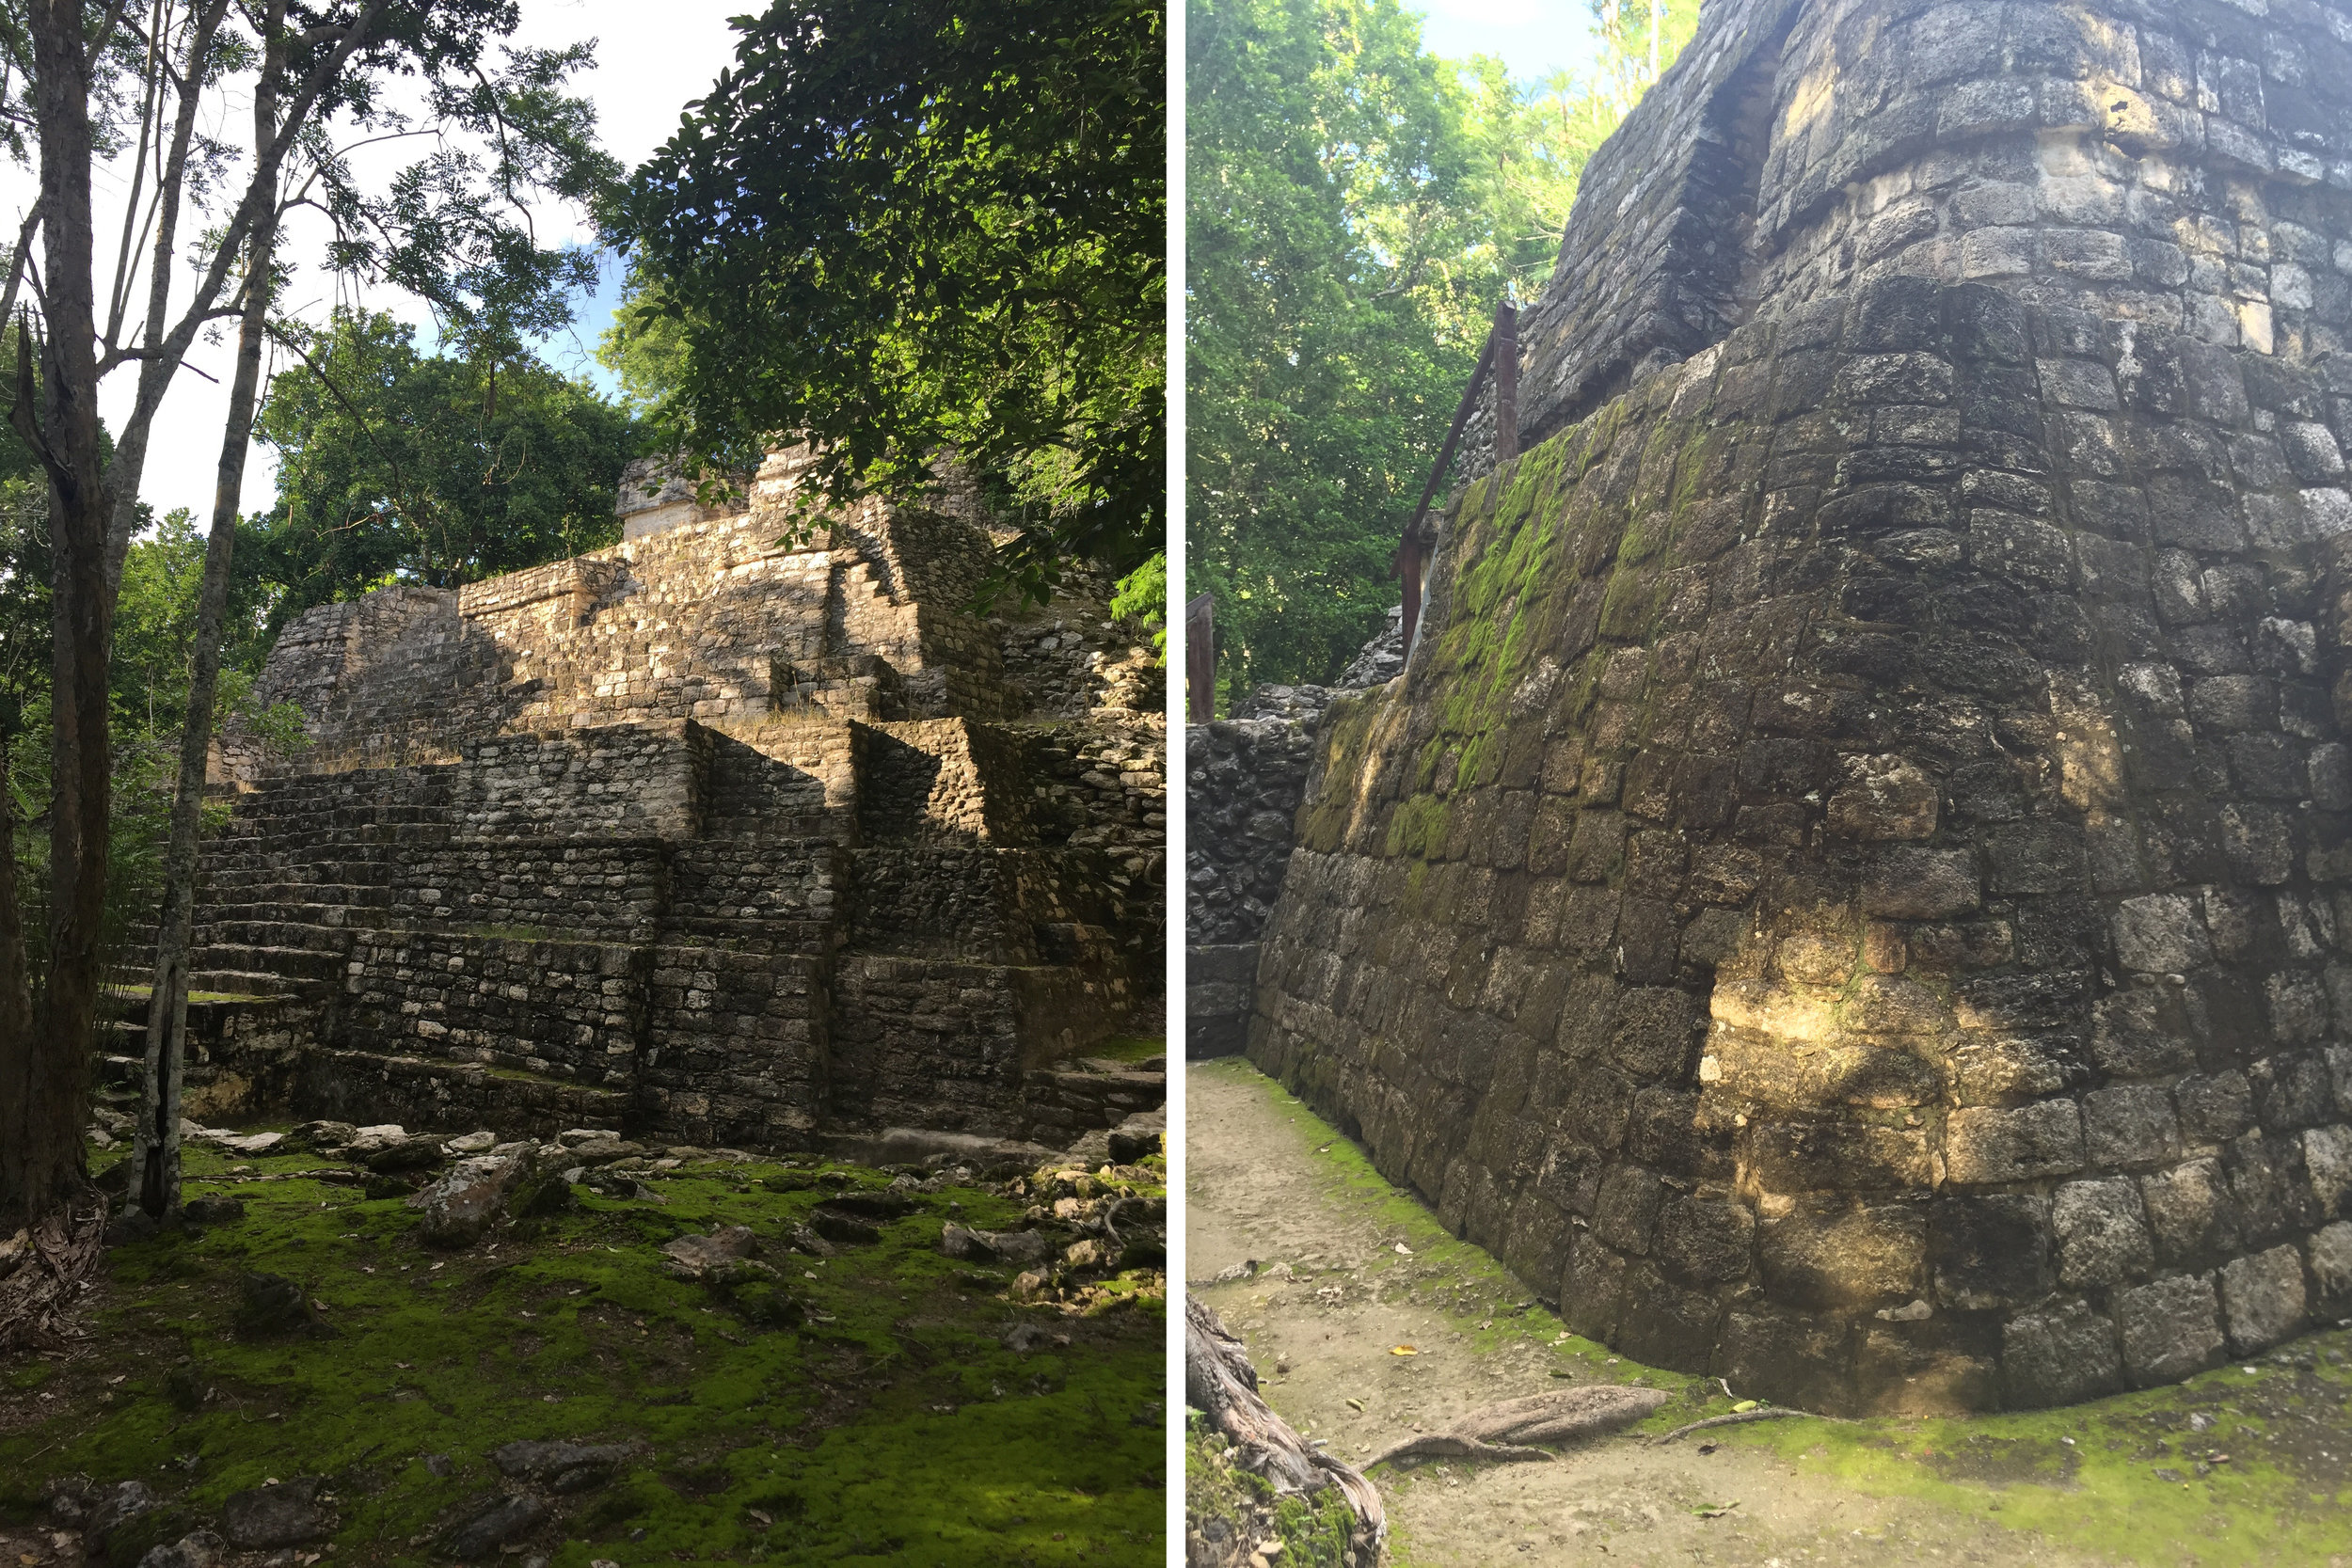 some of the structures at Balamku; the rounded walls are indicative of when the structure was built